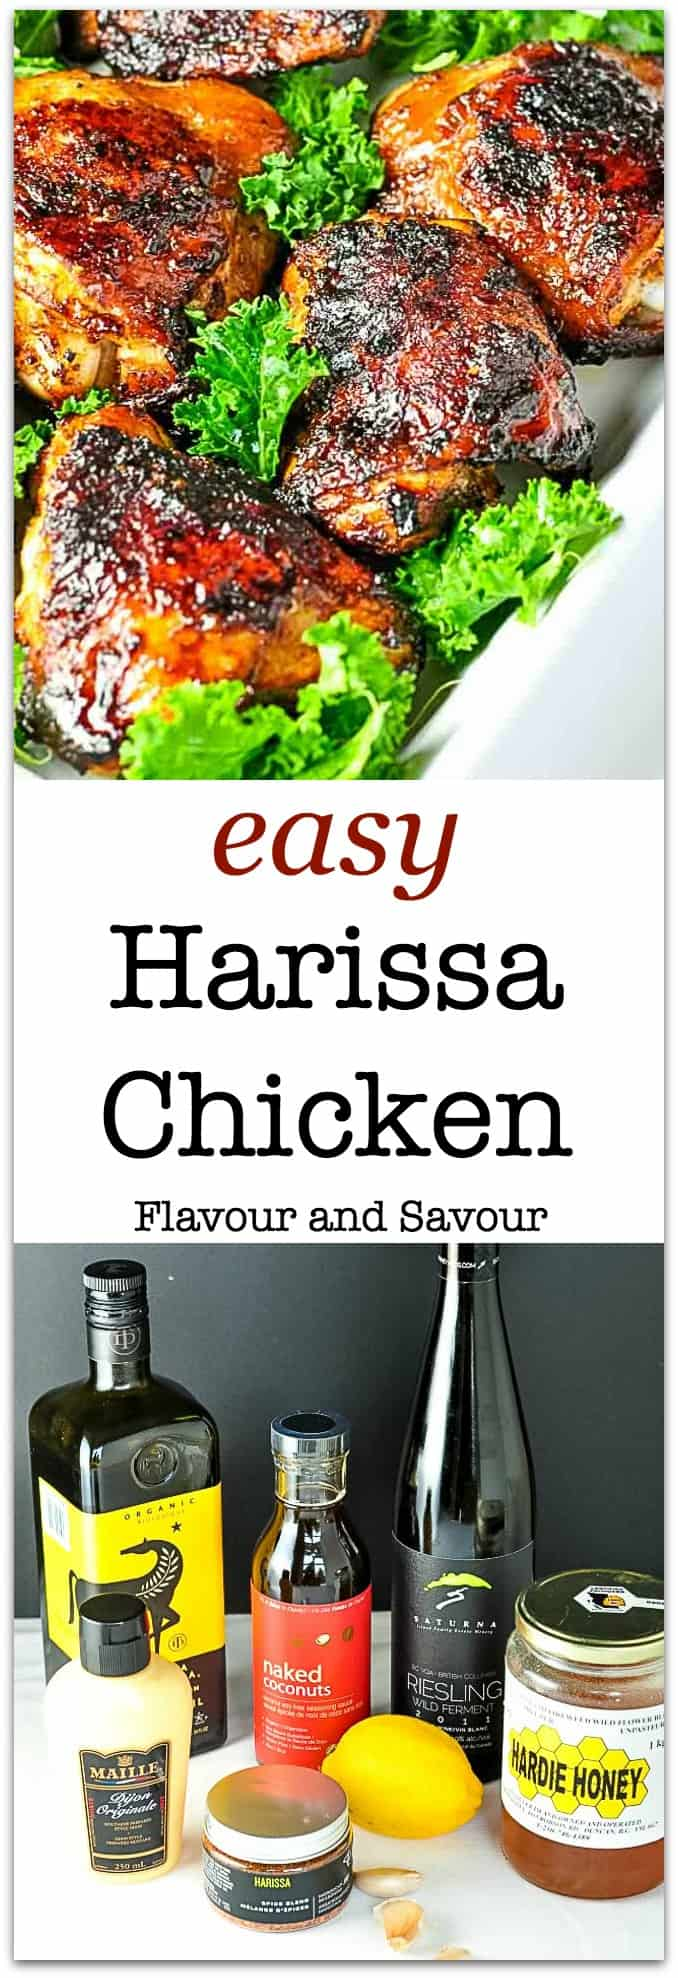 Easy Harissa Chicken. Enjoy the exciting flavours of North Africa in this easy-to-make chicken dish.  Whisk, marinate and bake! Just the right amount of spice to keep it interesting without overpowering.